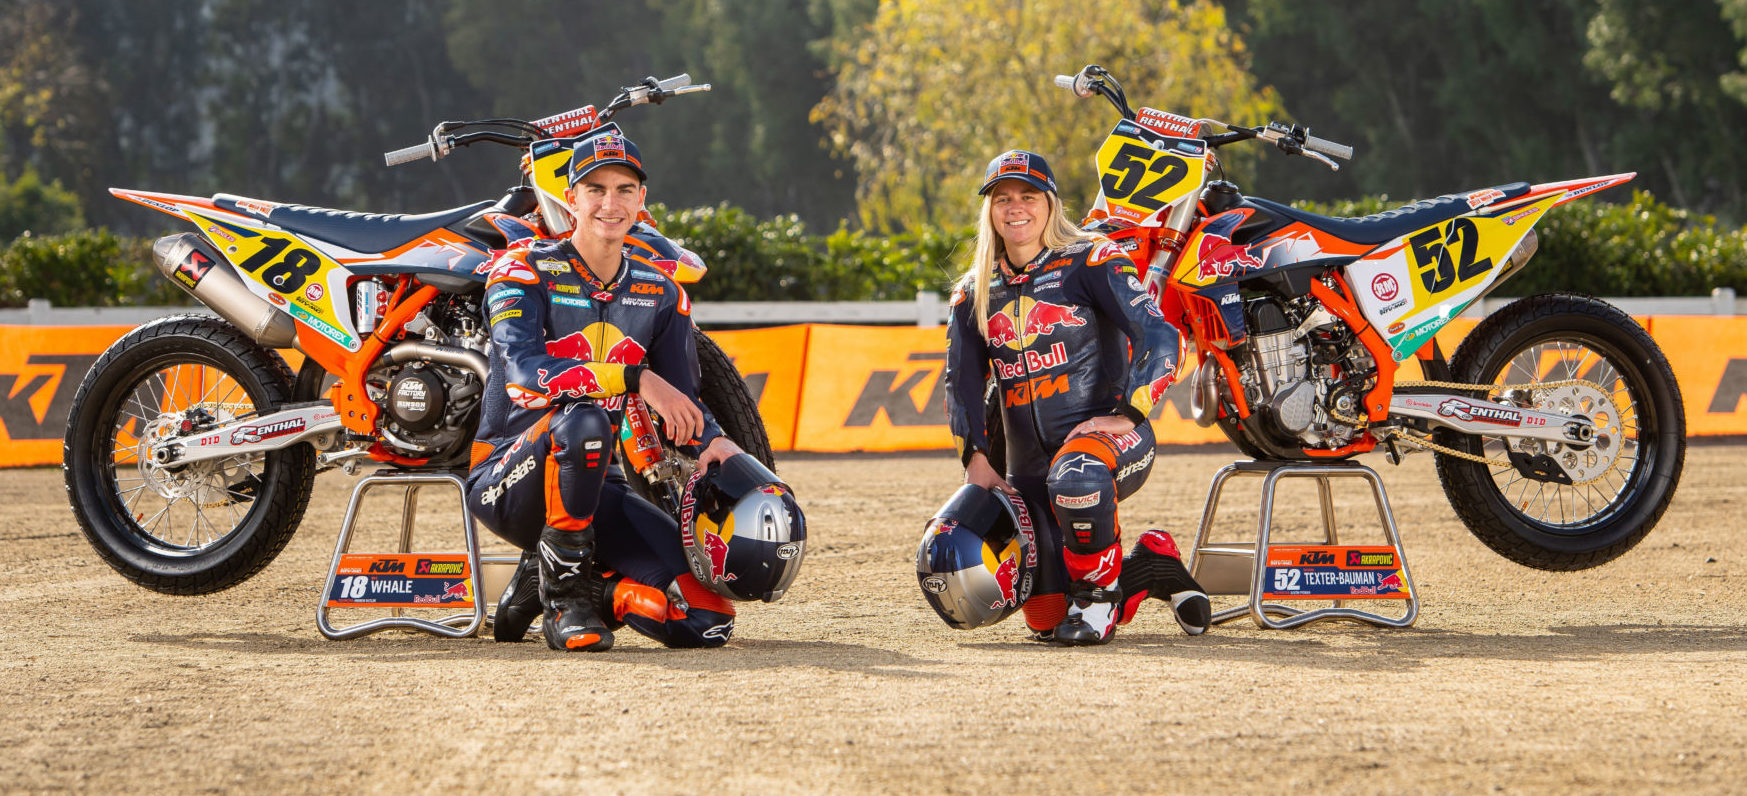 Red Bull KTM's 2021 AFT Singles riders Max Whale (left) and Shayna Texter Bauman (right). Photo courtesy Red Bull KTM.